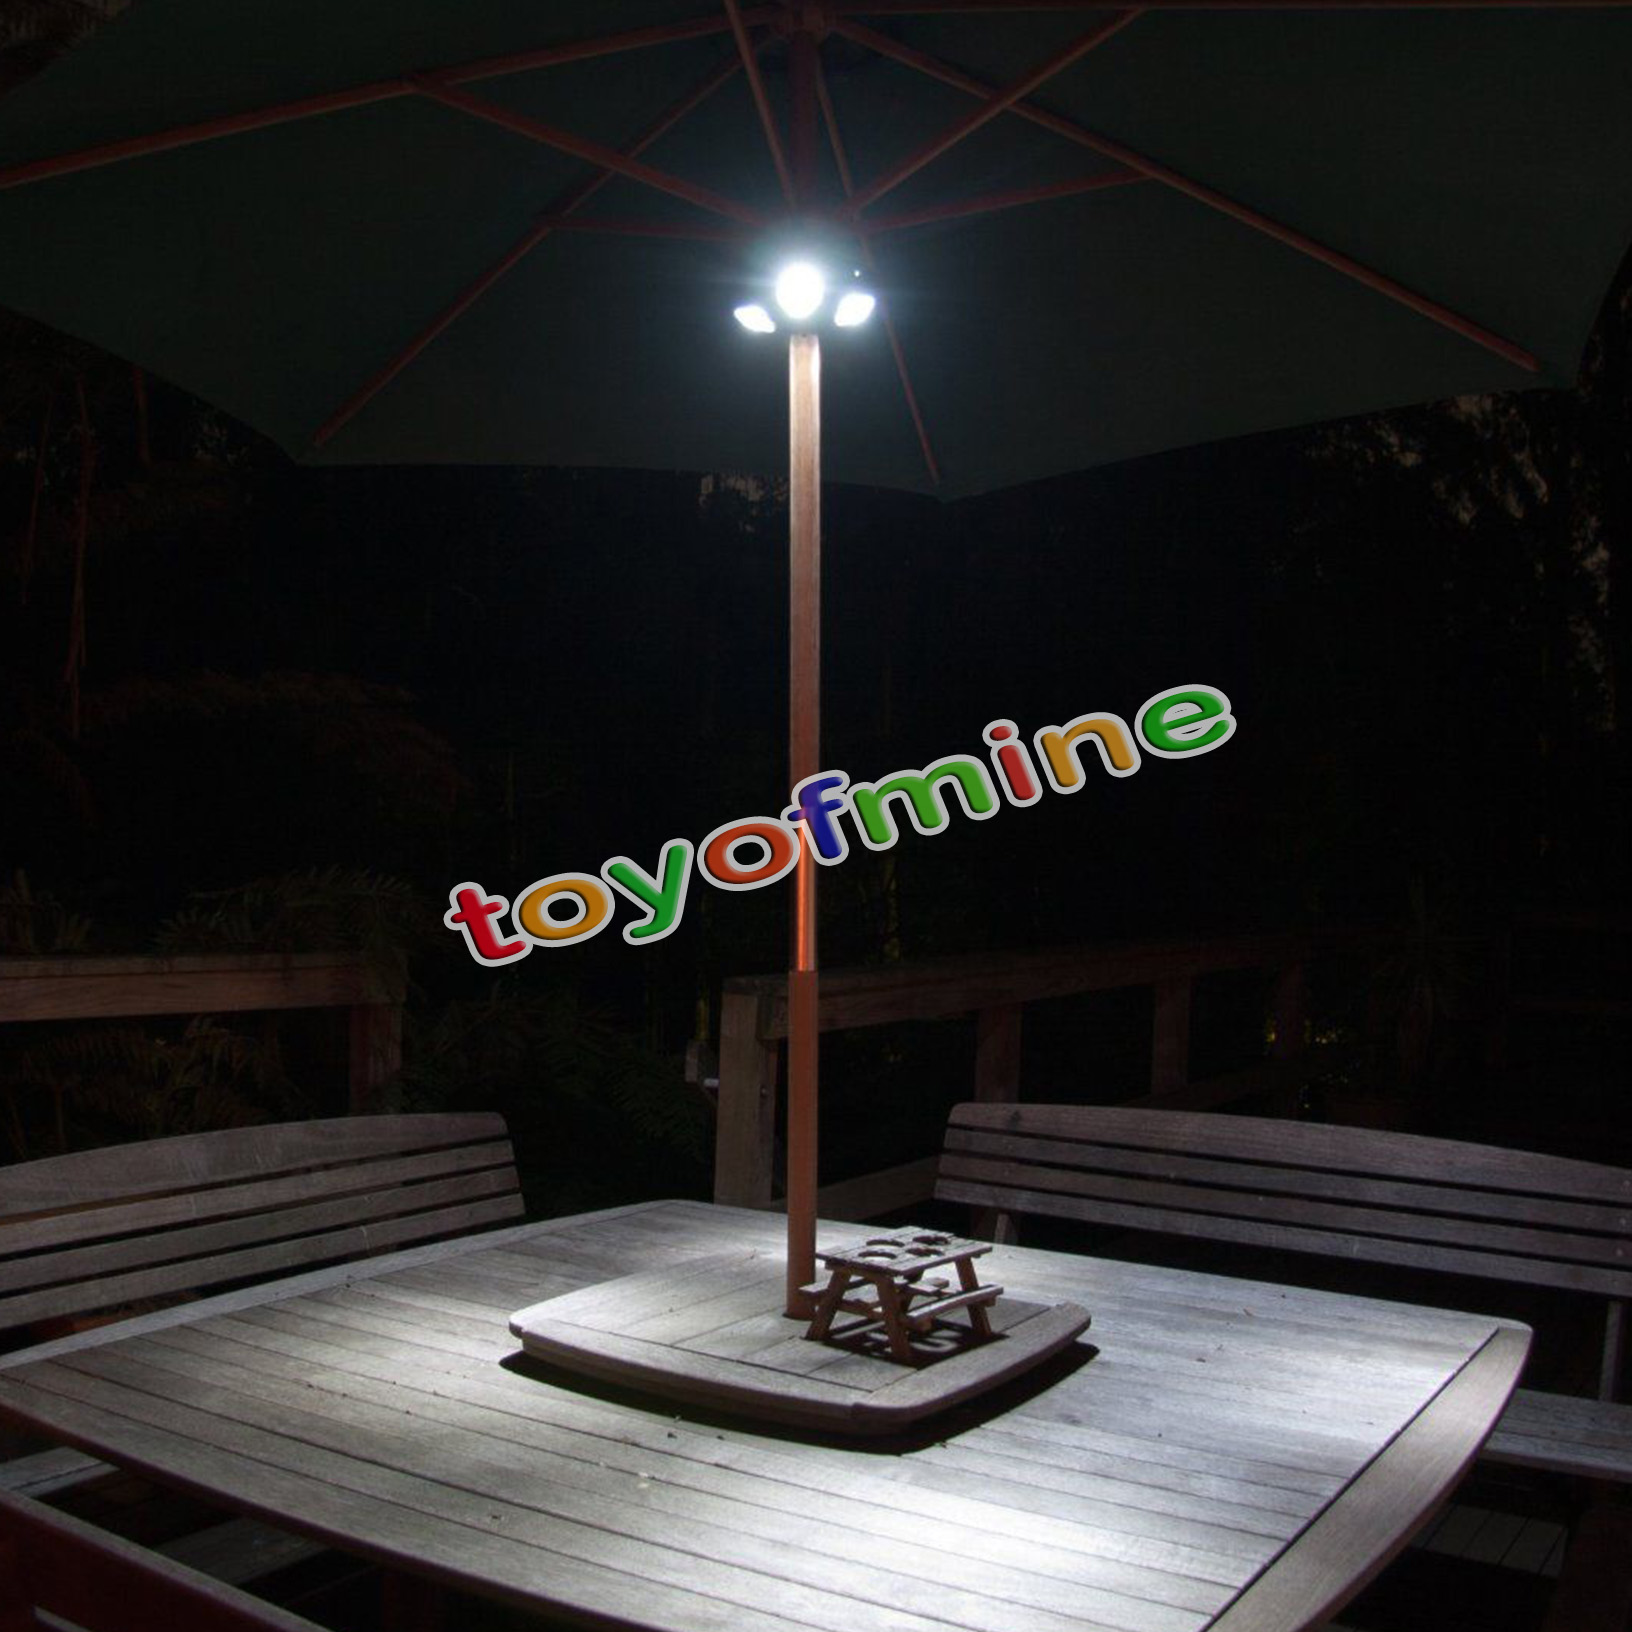 24 LED Parasol Lights Gardening Umbrella Torch At 72 Lumens Adjustable Patio